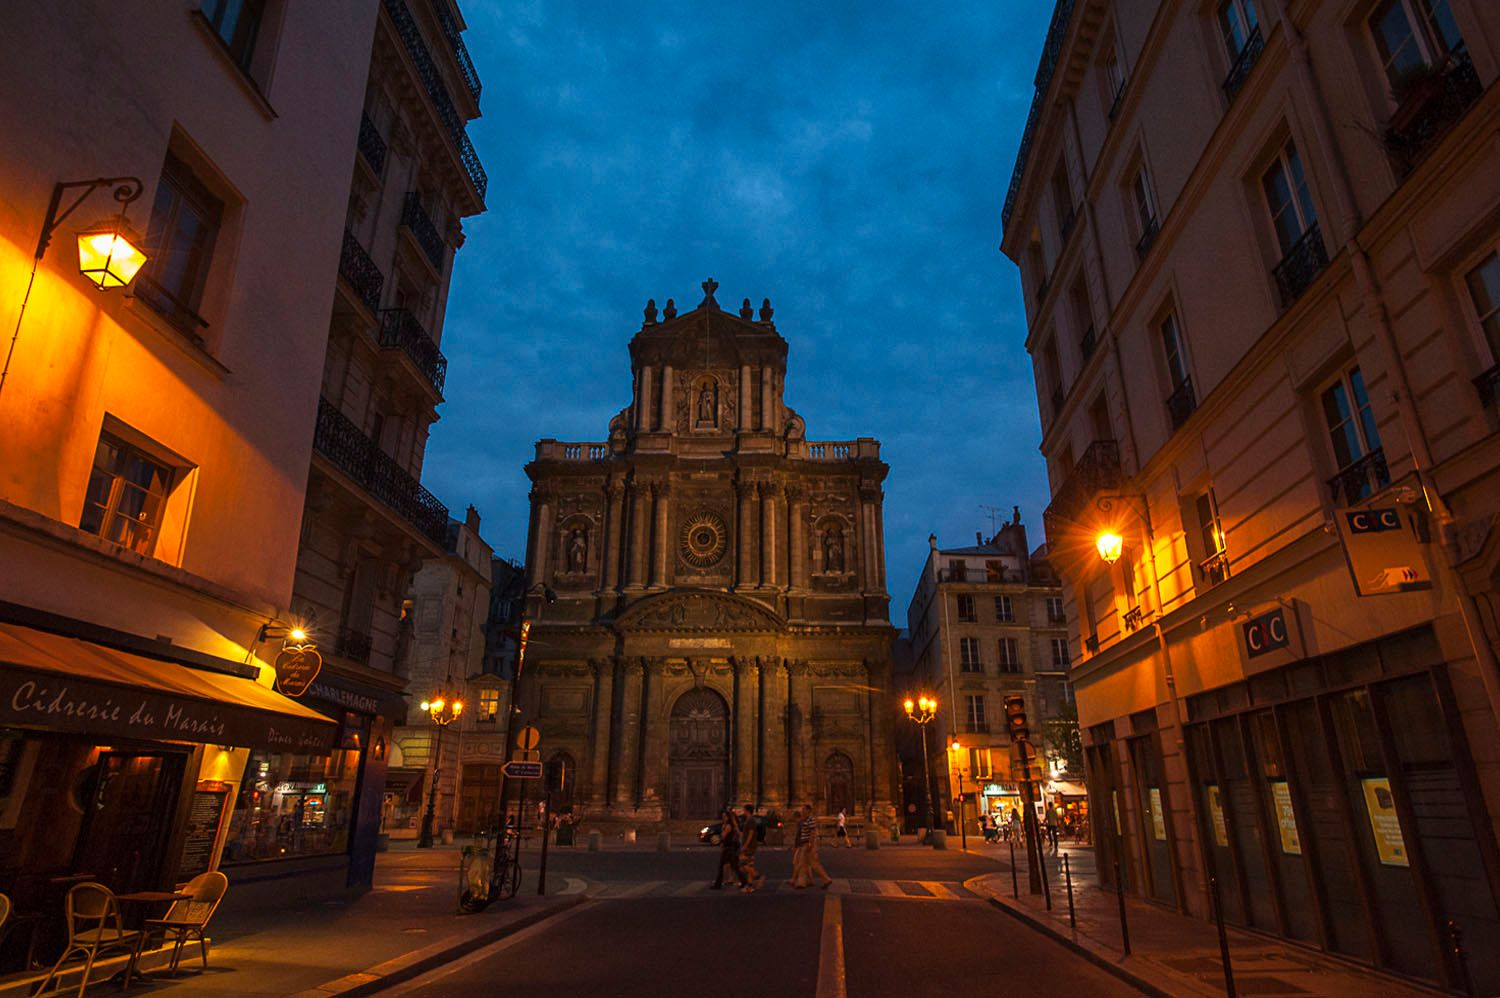 Saint Paul Church at dusk, Le Marais, Paris, France